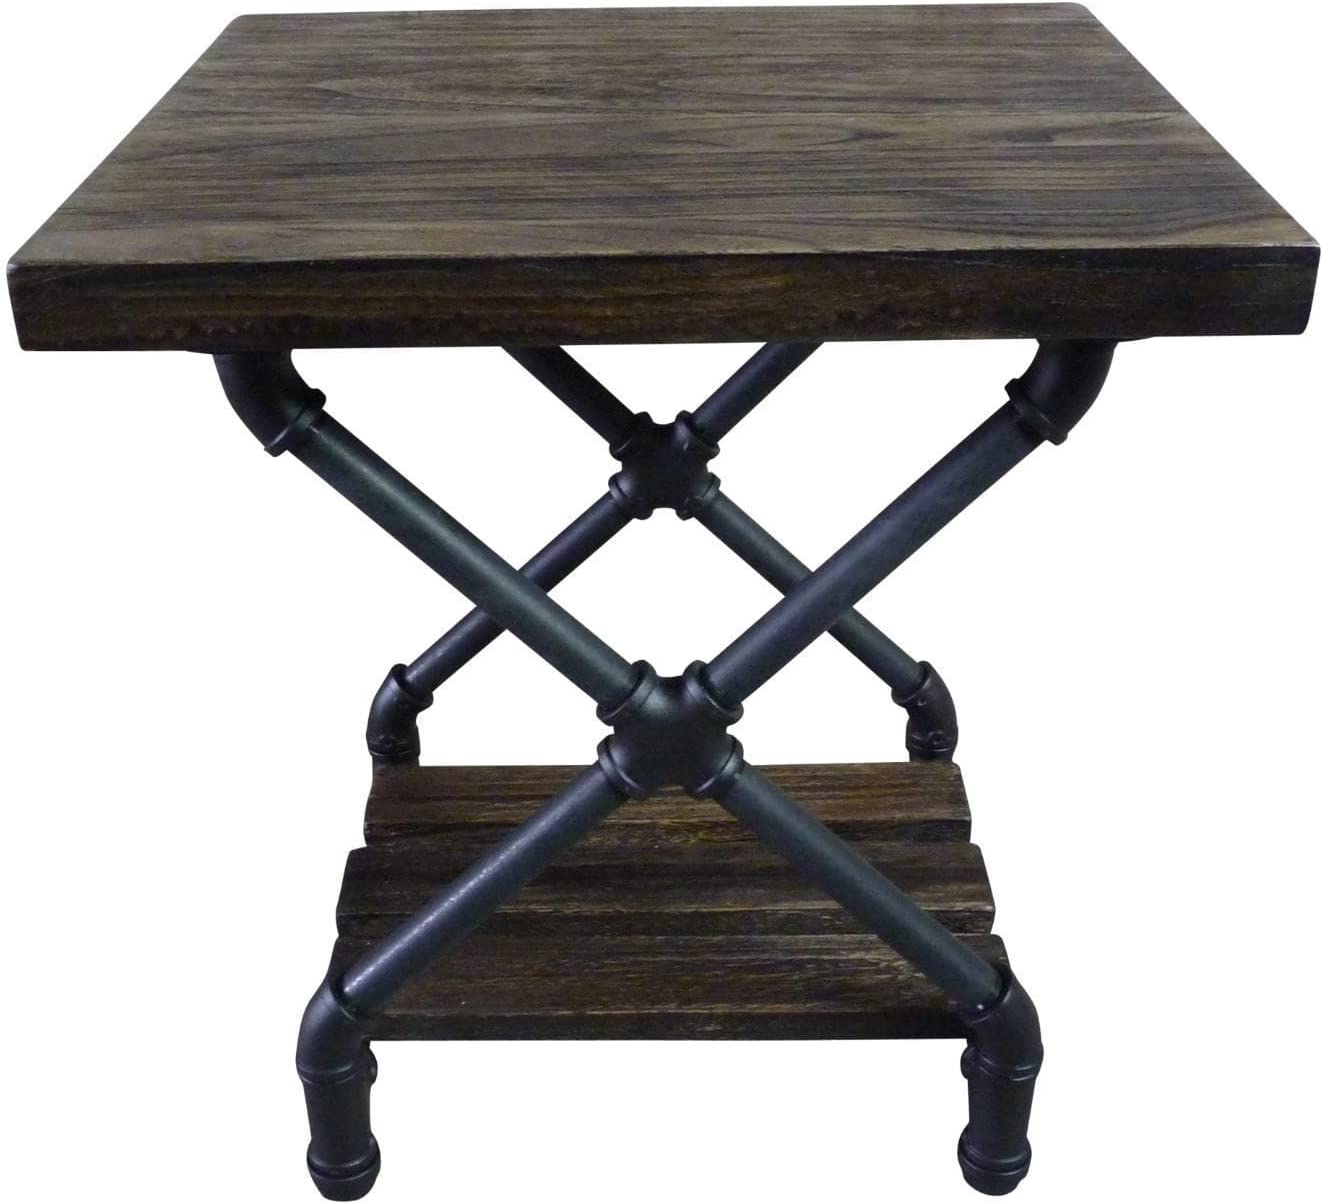 FURNITURE PIPELINE Rustic Side End Table Bedroom Night Stand, Metal with Reclaimed Aged Wood Finish (Rustic Bronze with Light Brown Stained Wood)